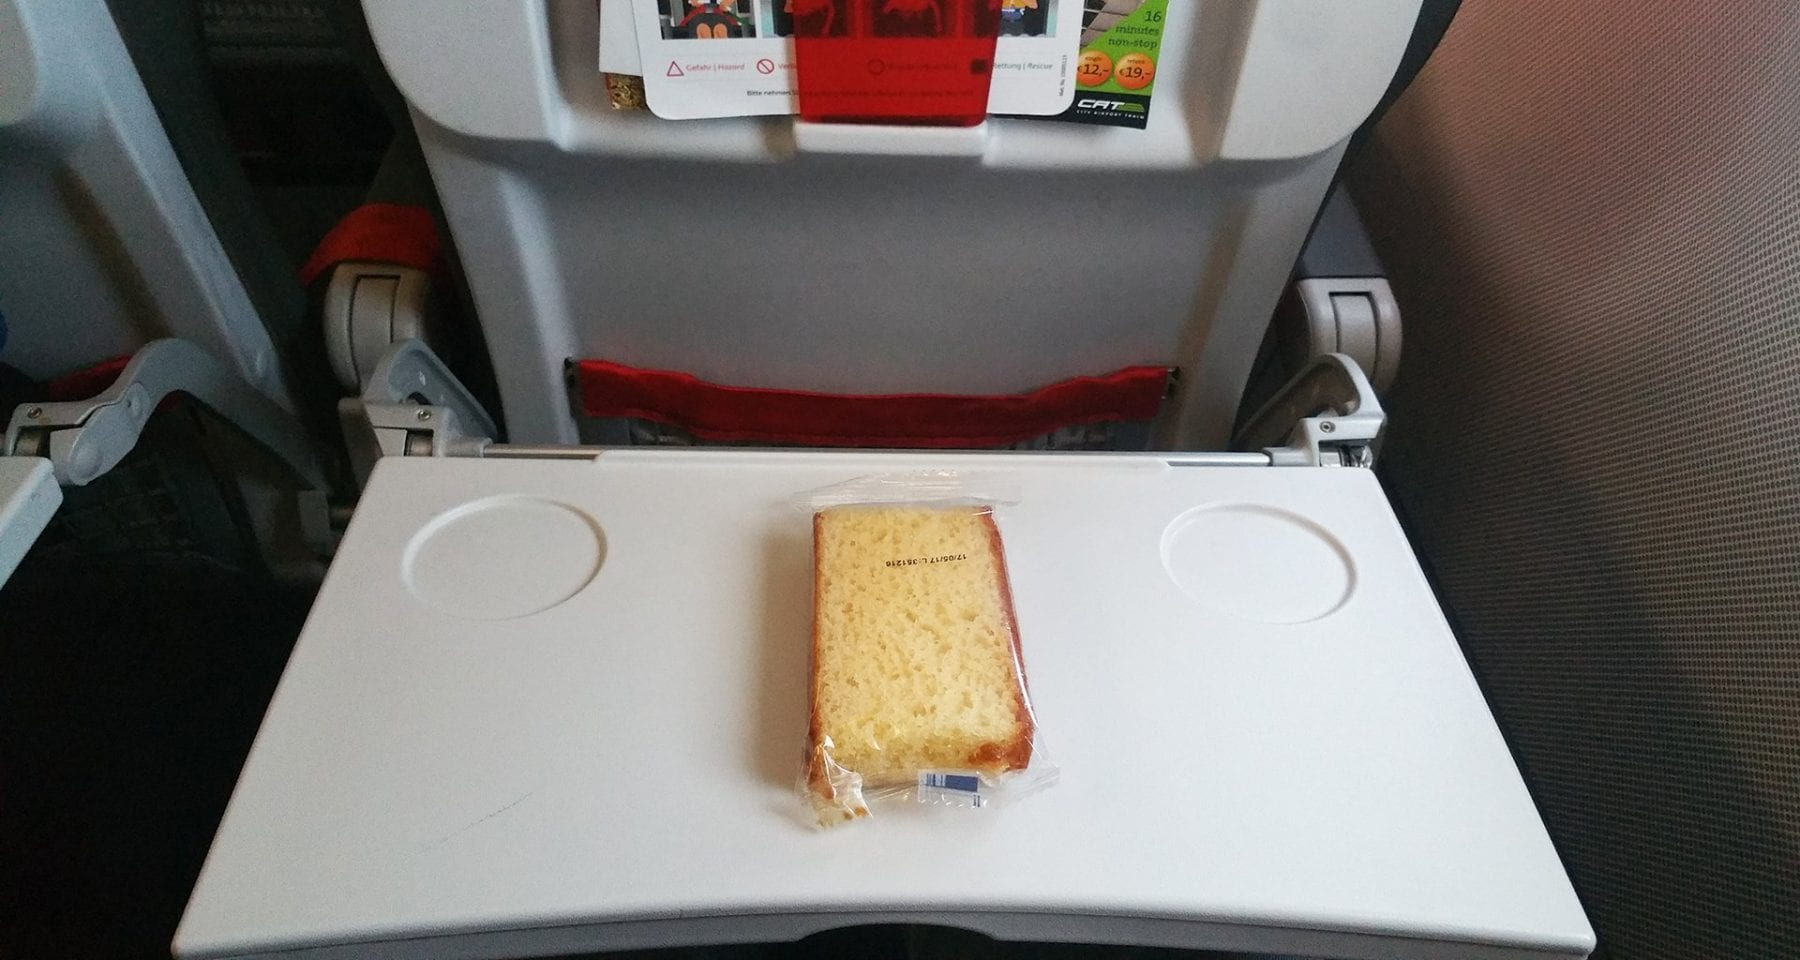 Austrian airlines economy class snack on european flights